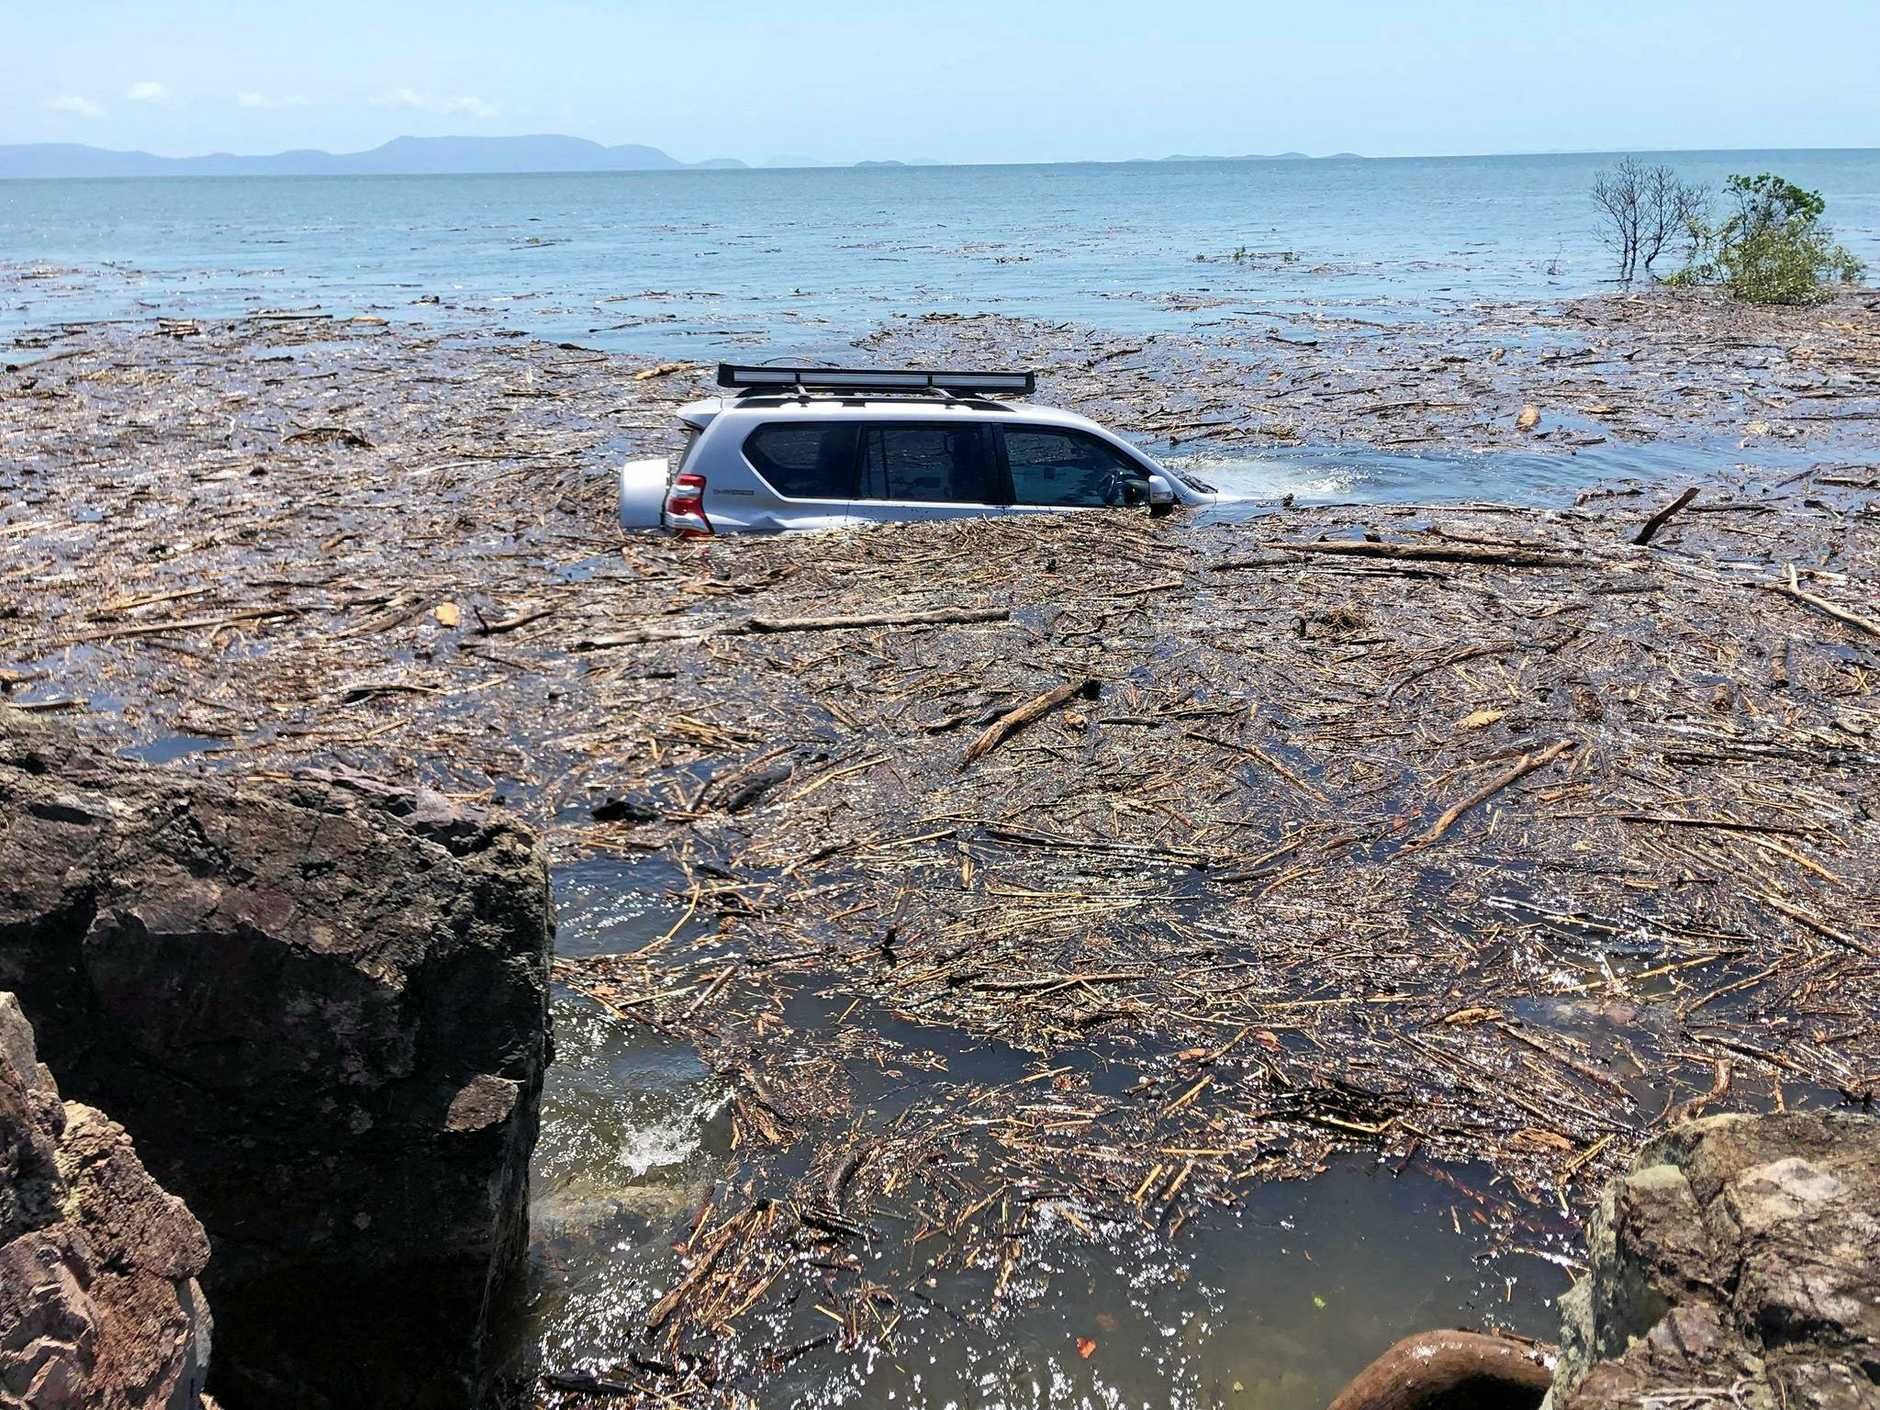 An unlucky boater has had his car swamped by the king tides at Midge Point after leaving it parked on an informal boat ramp known as Jimmy's Rocks.